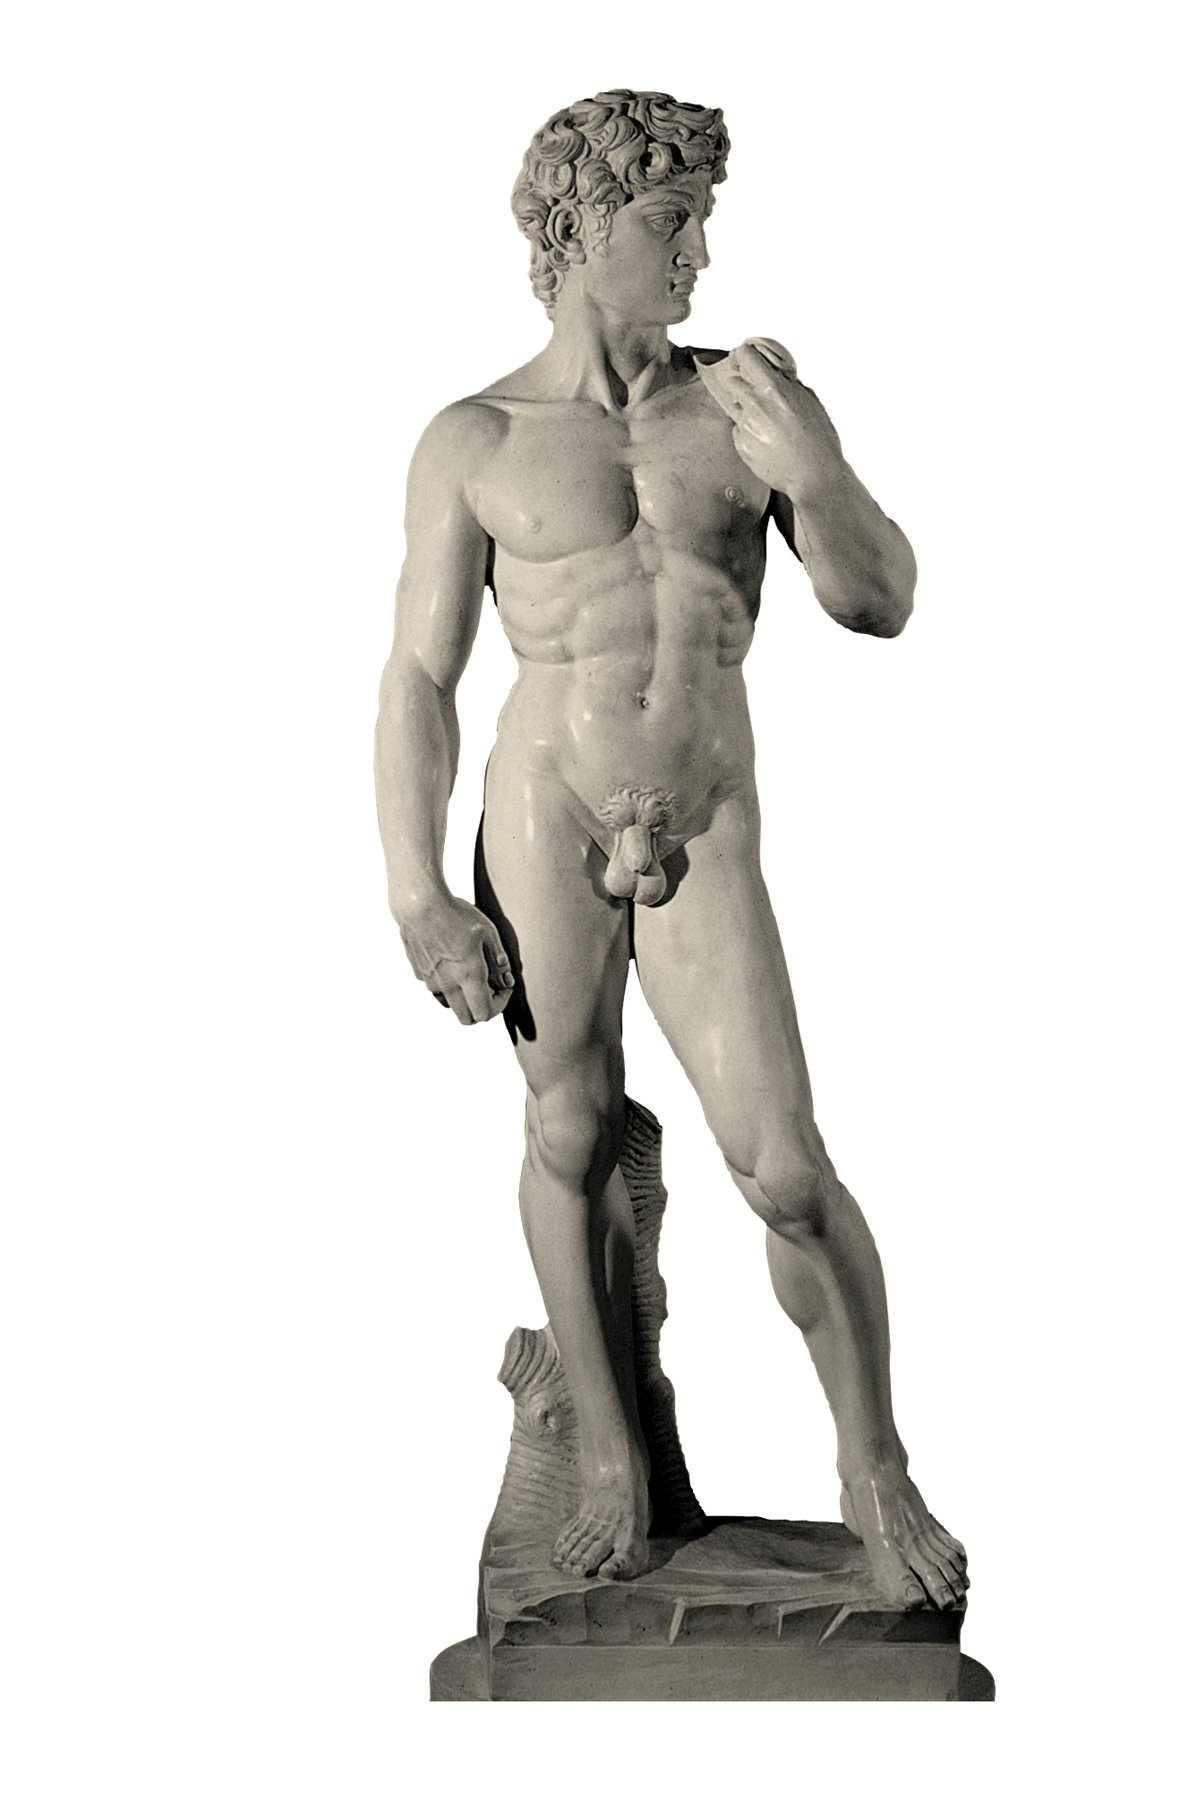 David di Michelangelo (copia ridotta in gesso)